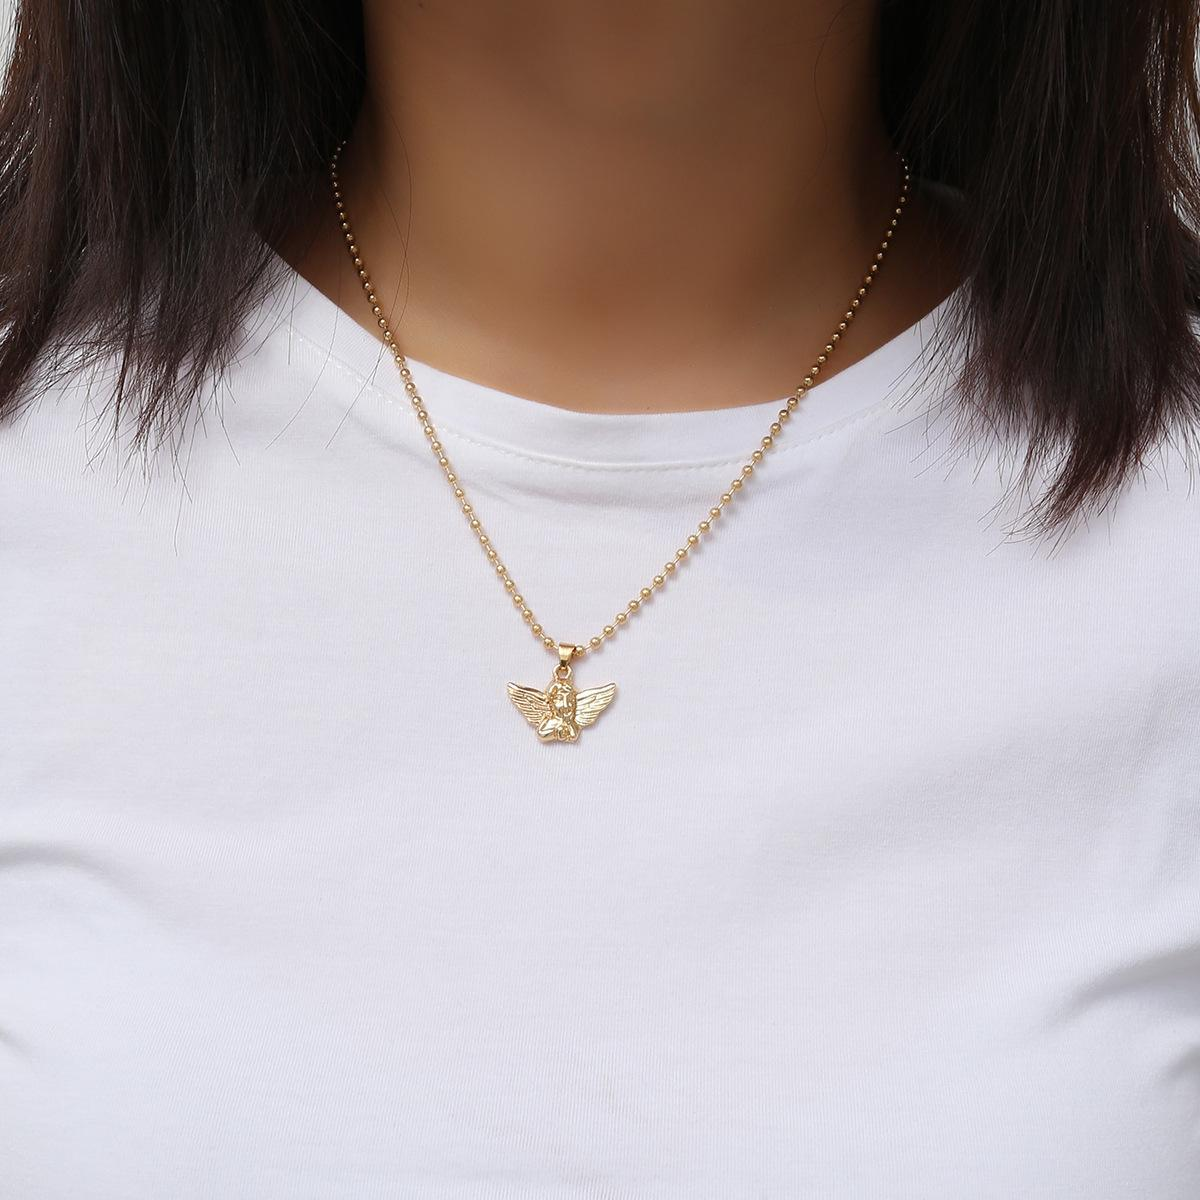 43 Best Necklaces images in 2016 | Jewelry, Cute jewelry